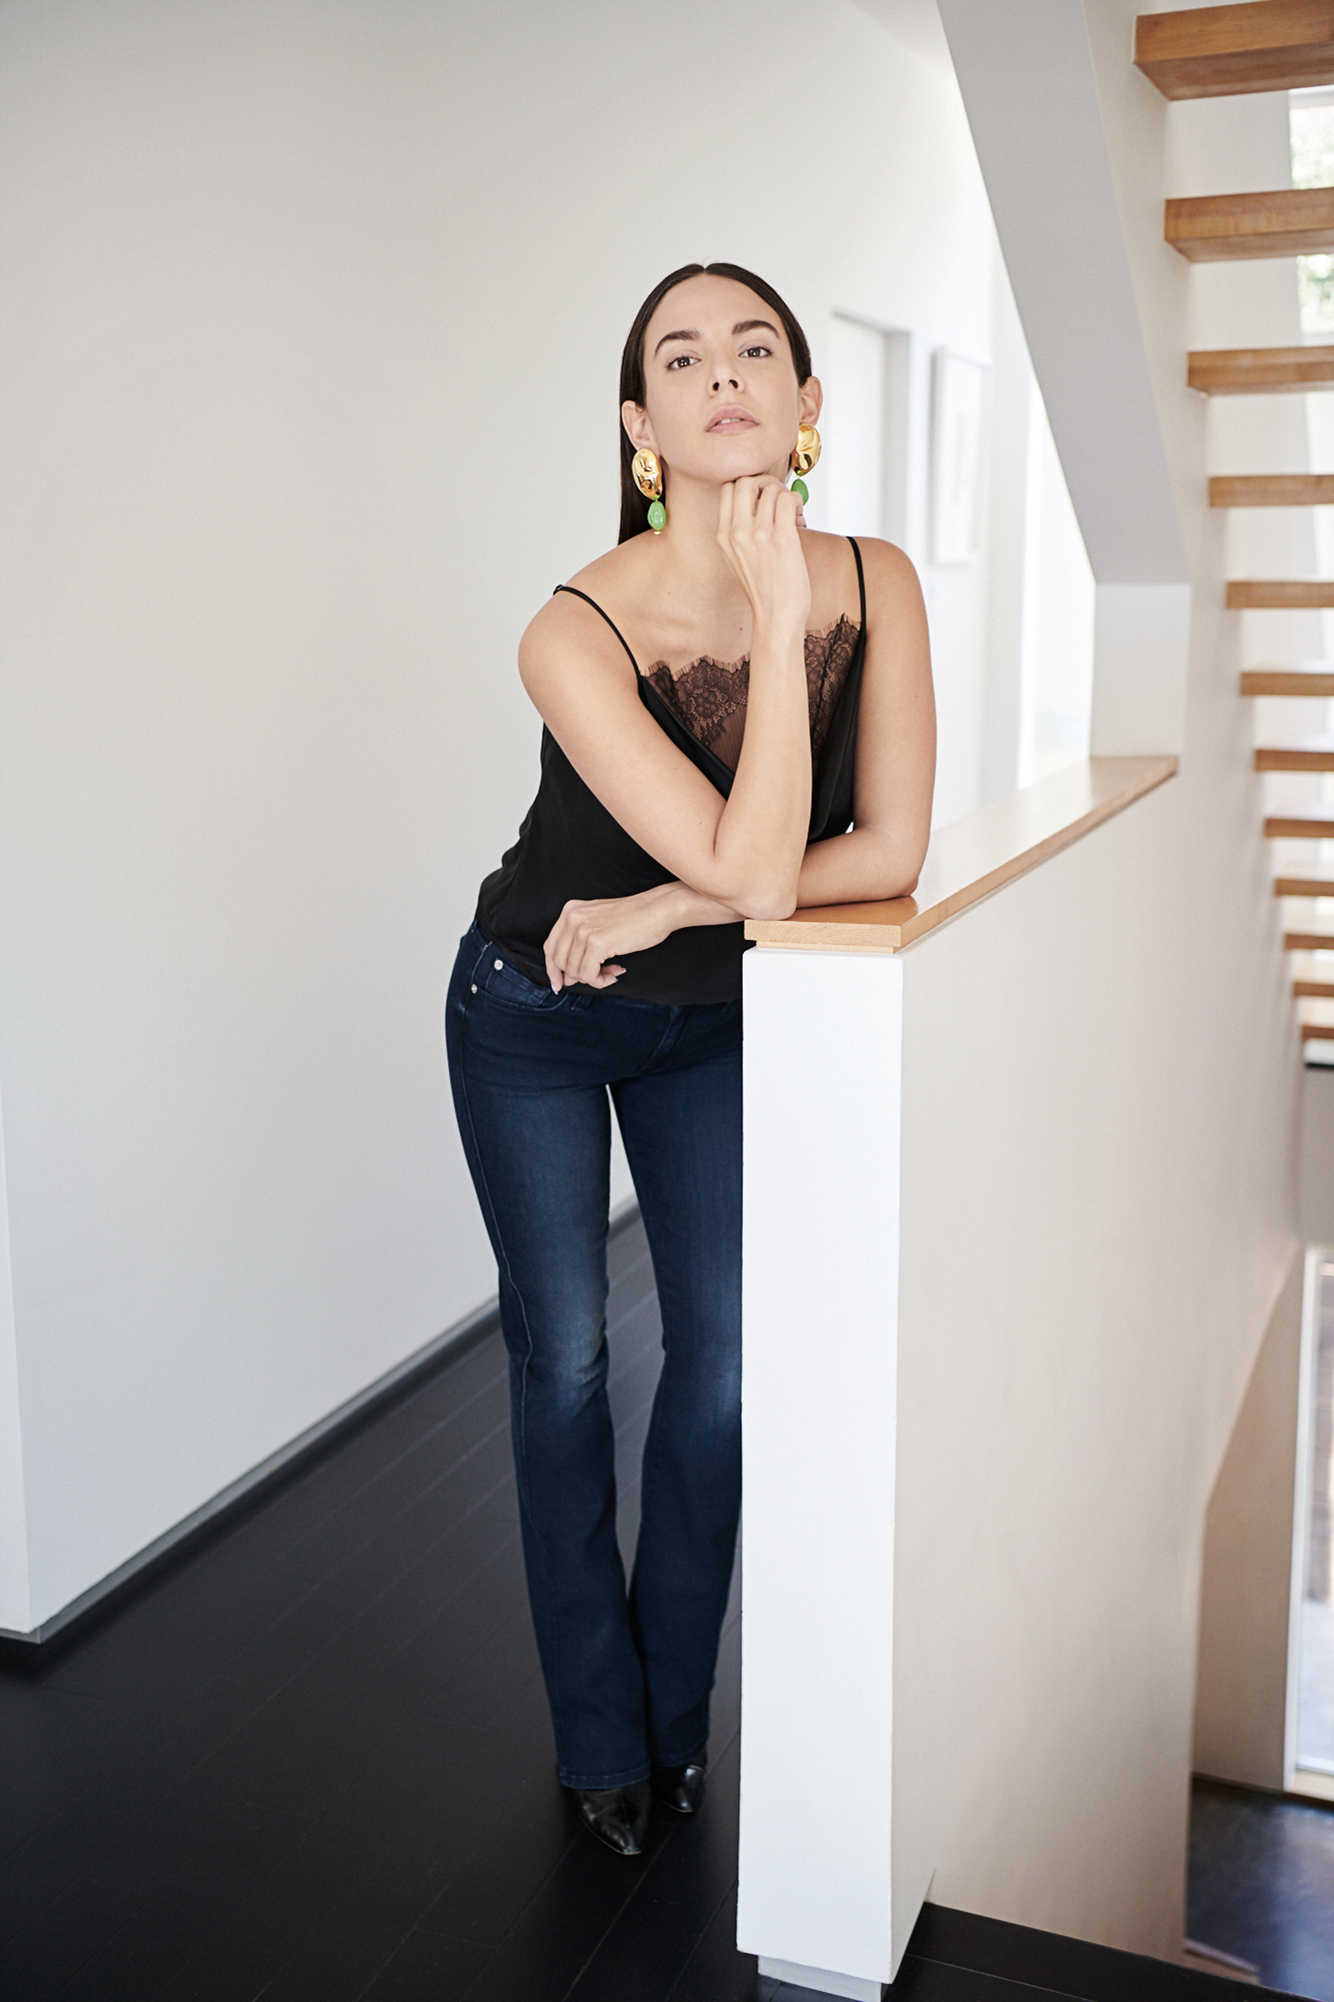 Seven For All Mankind Fall 2020 Ad Campaign Film & Photos